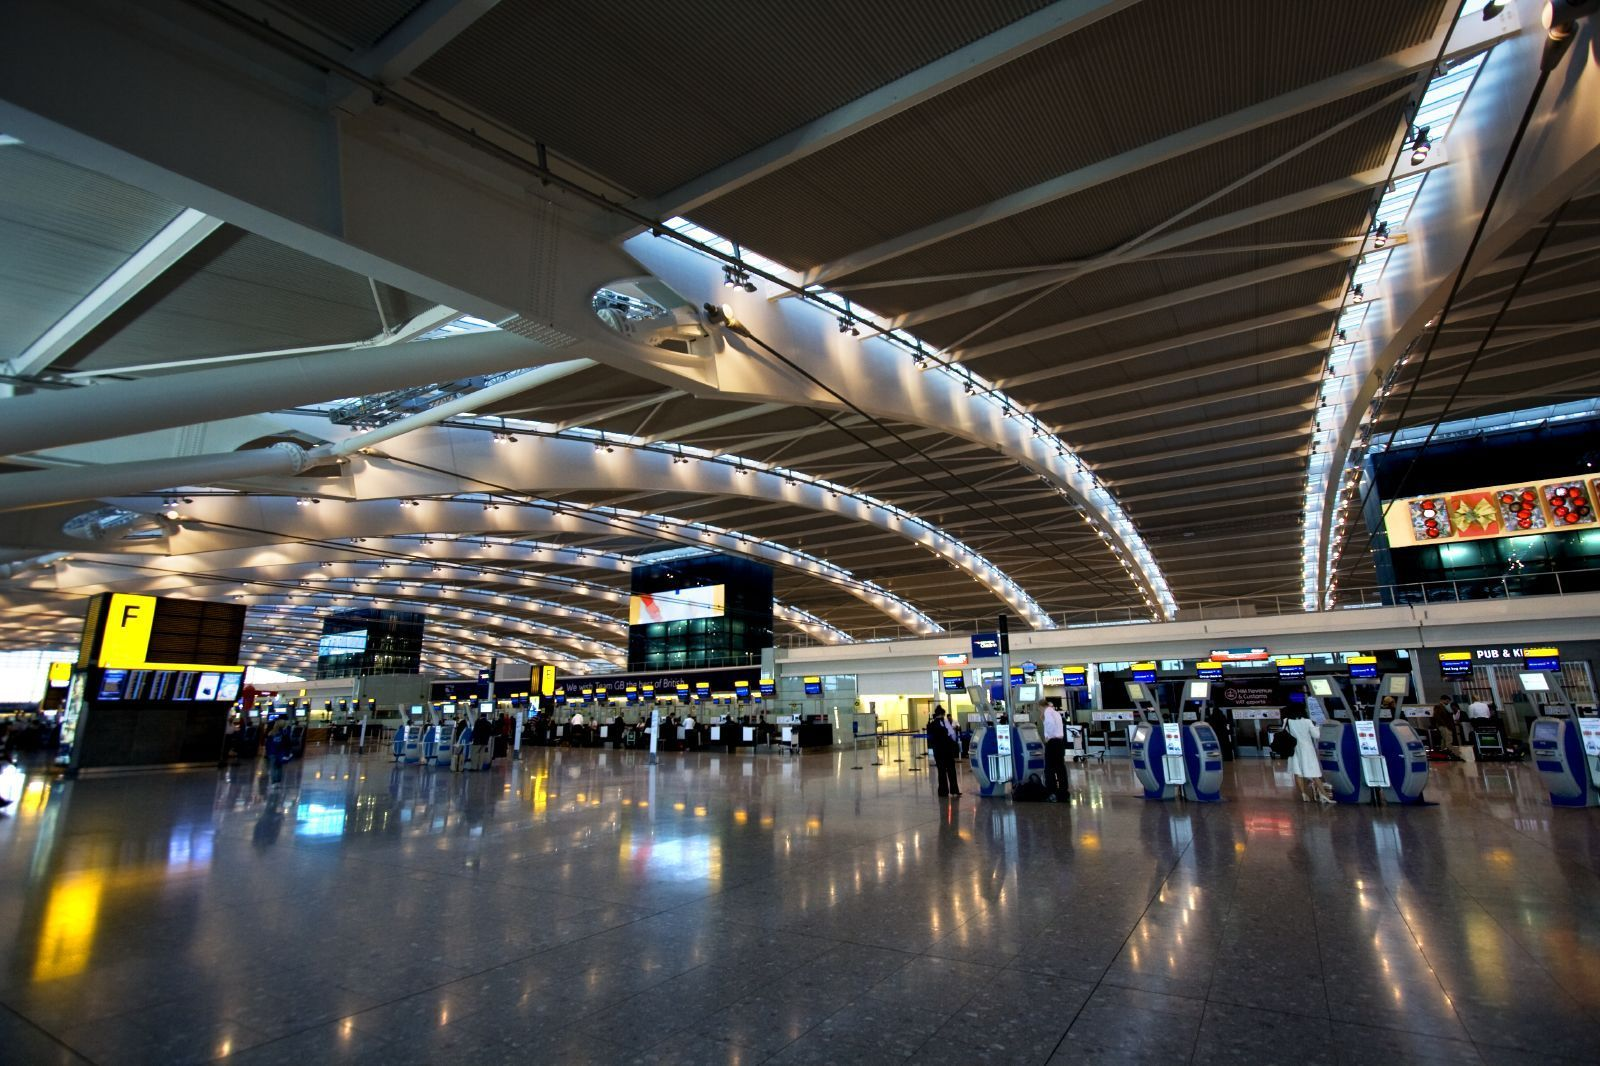 Airlines: London Heathrow Airport